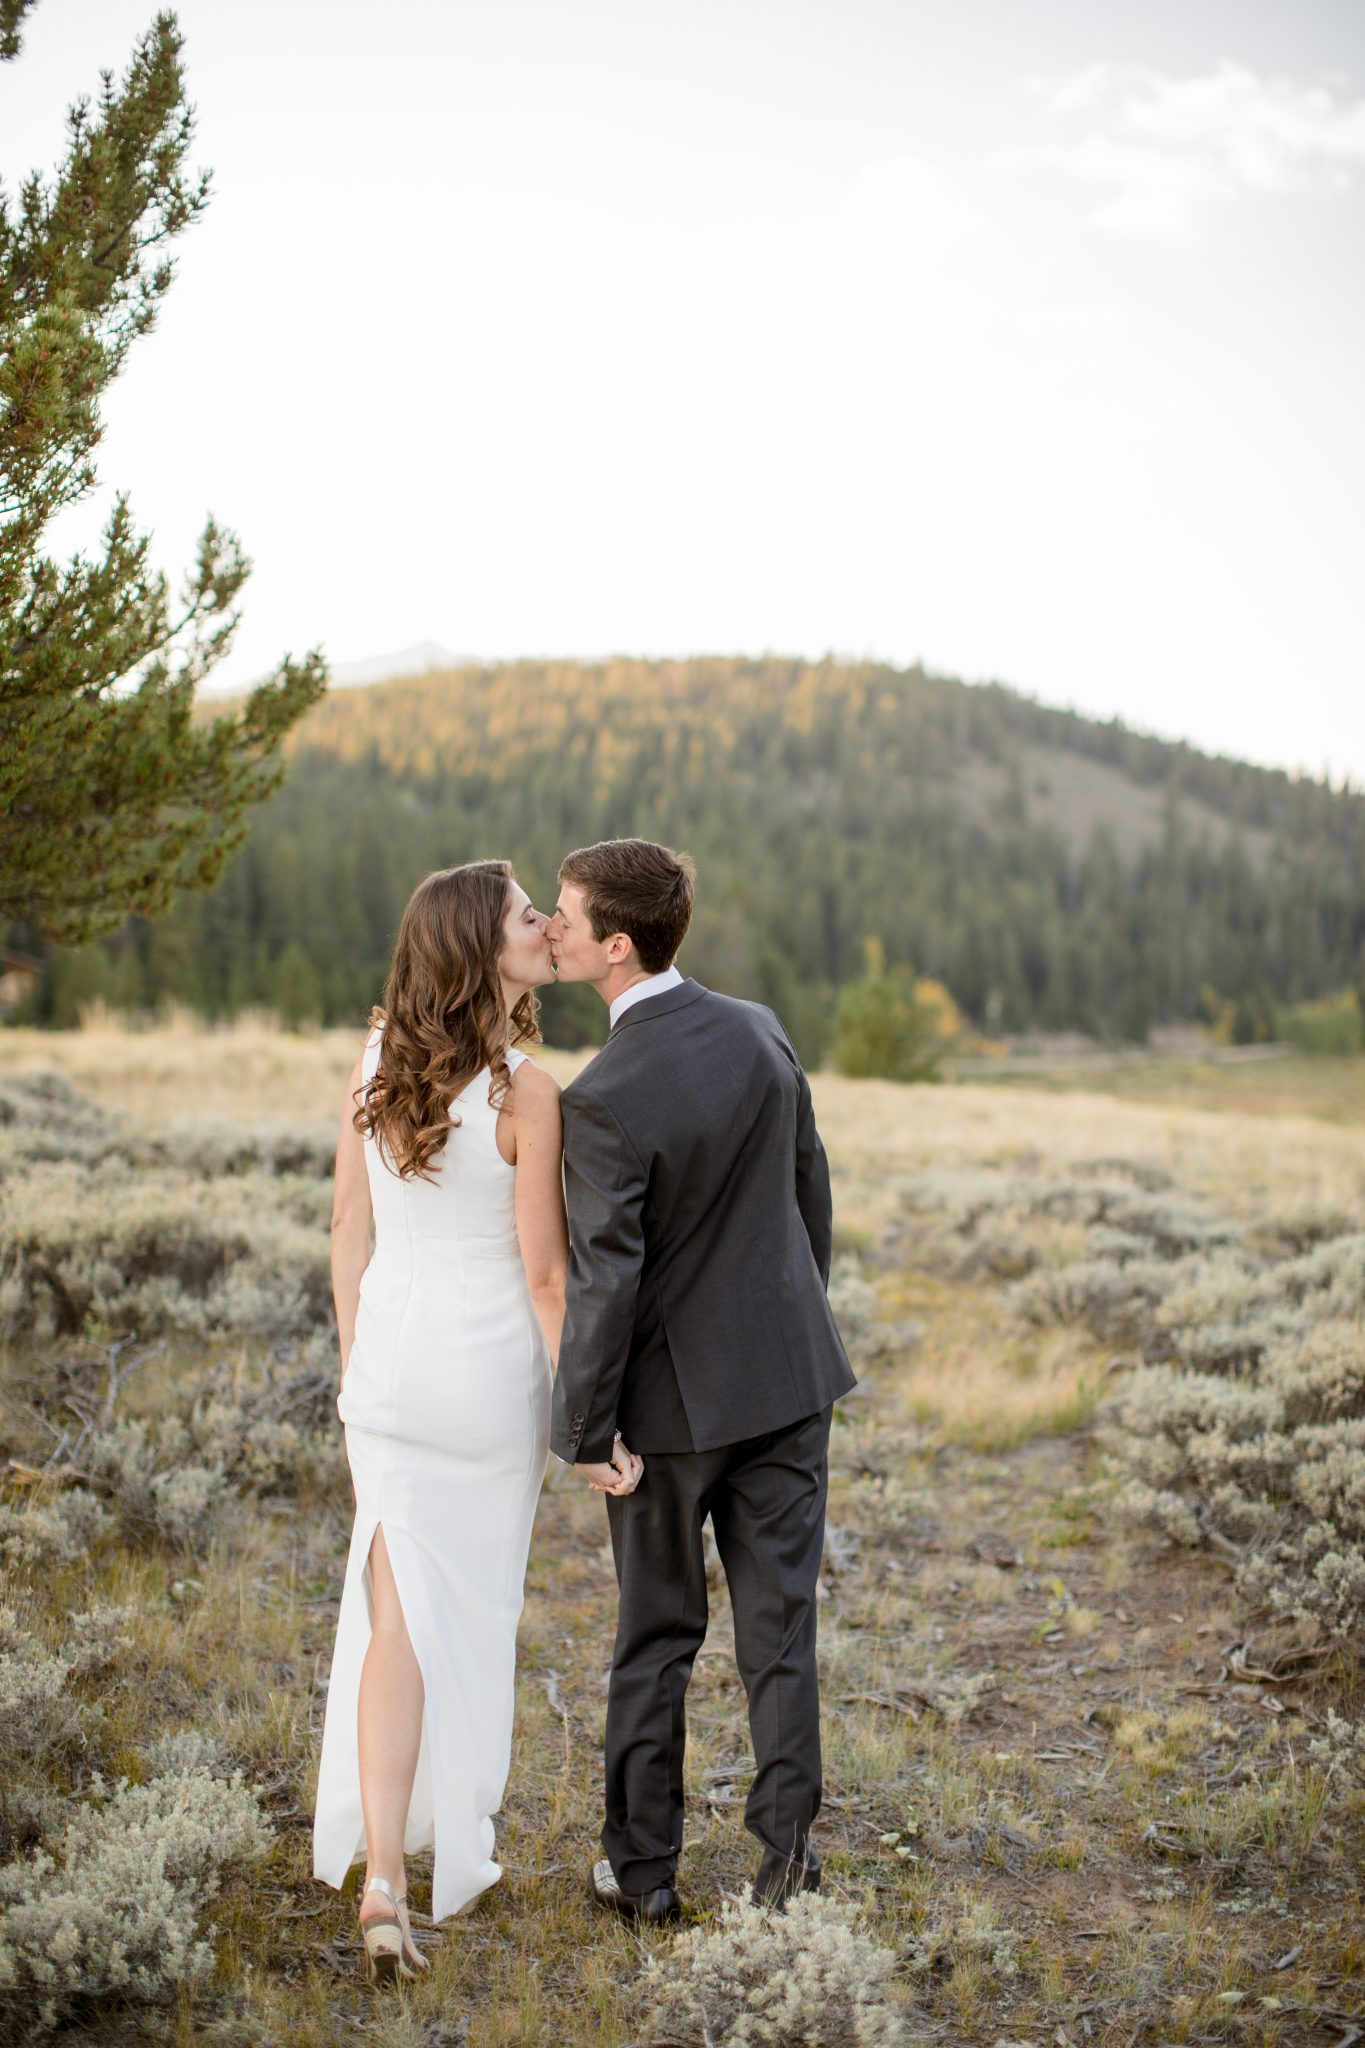 Colorado Newlywed Portraits by Andrea Stark